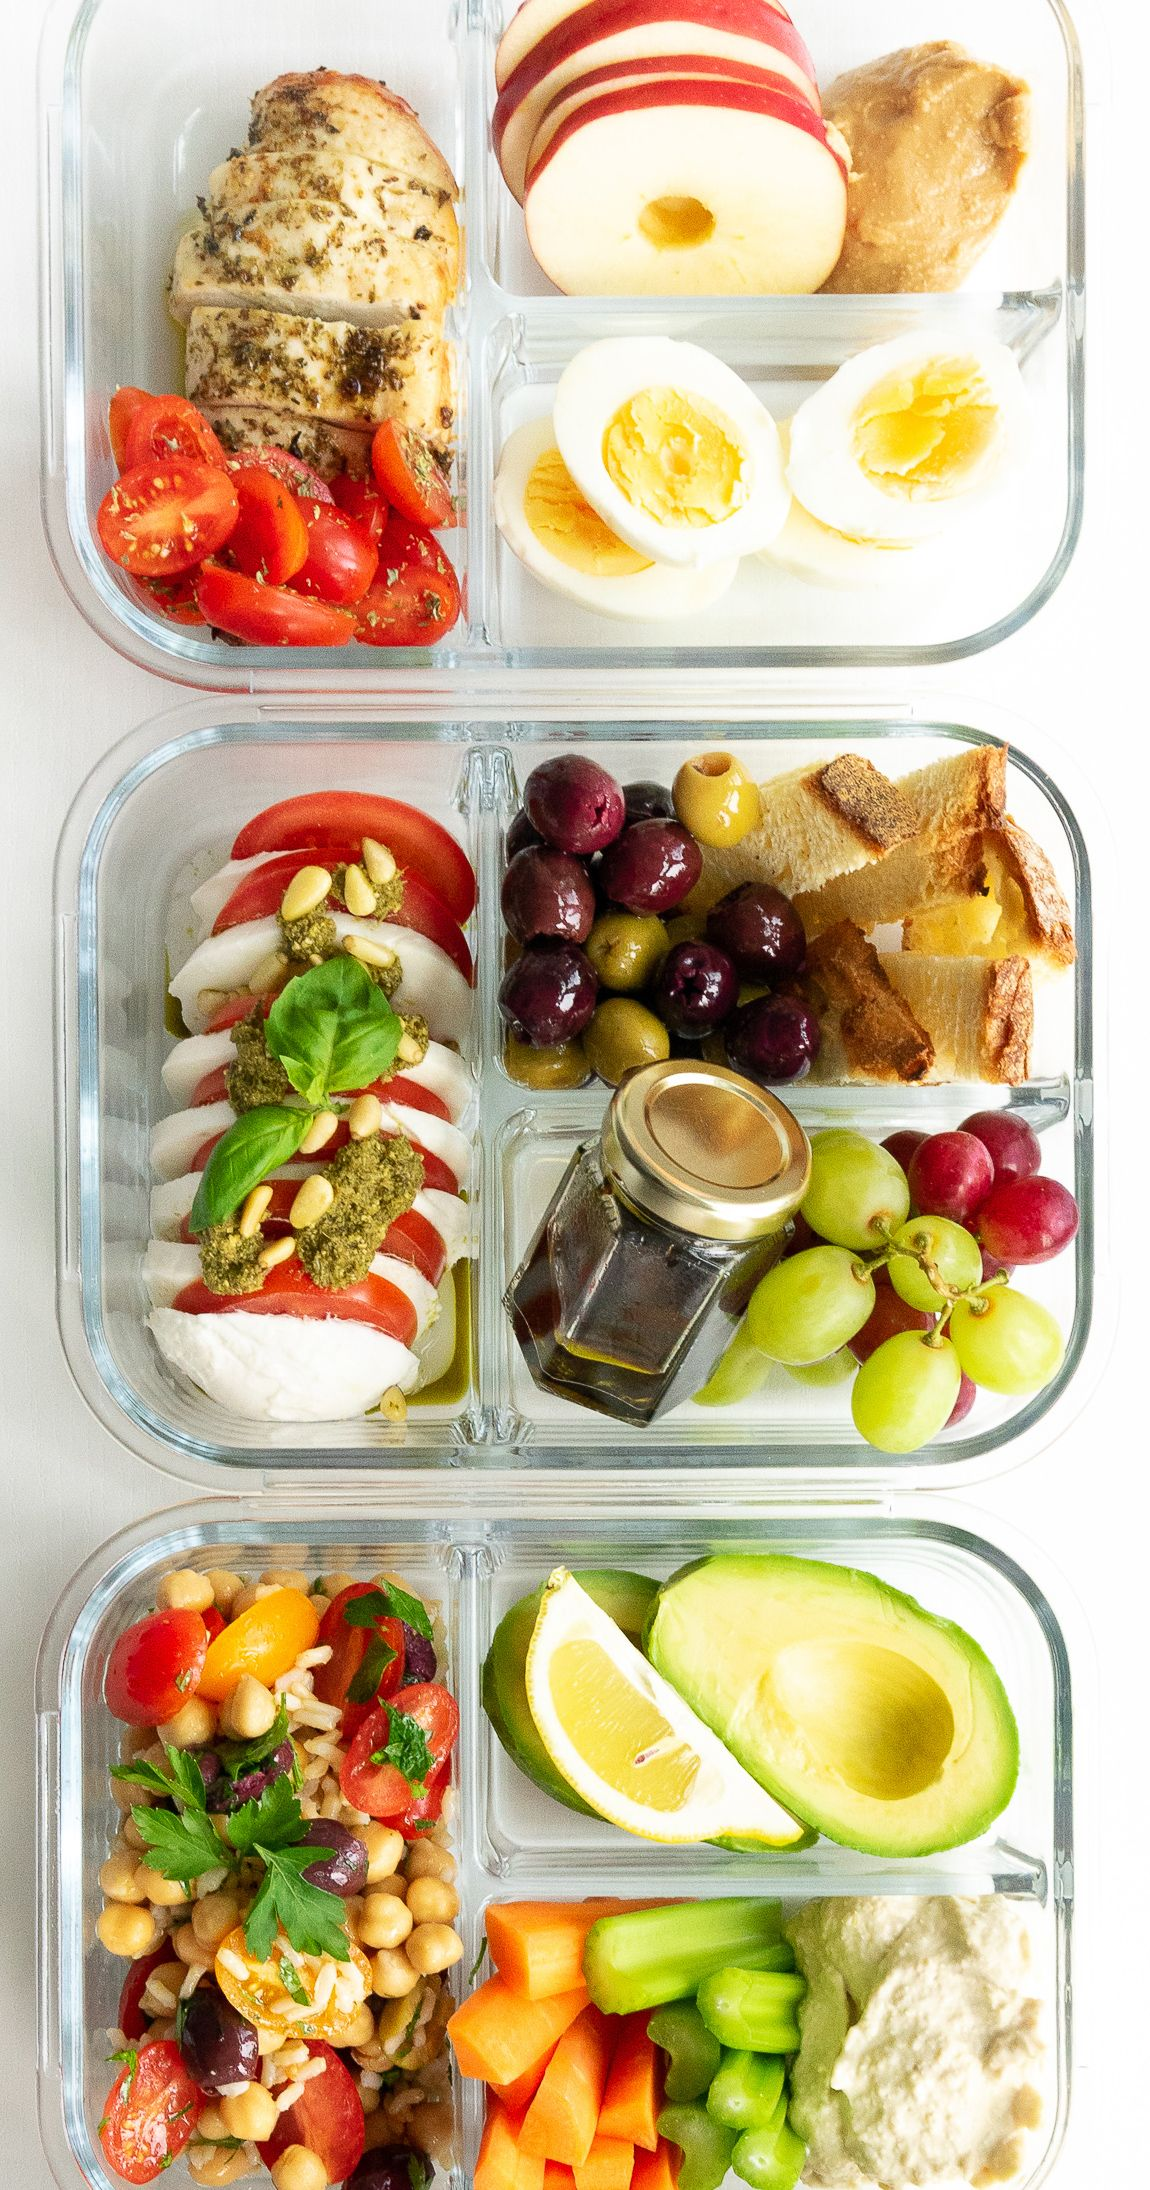 5 Yummy Lunch Box Ideas images